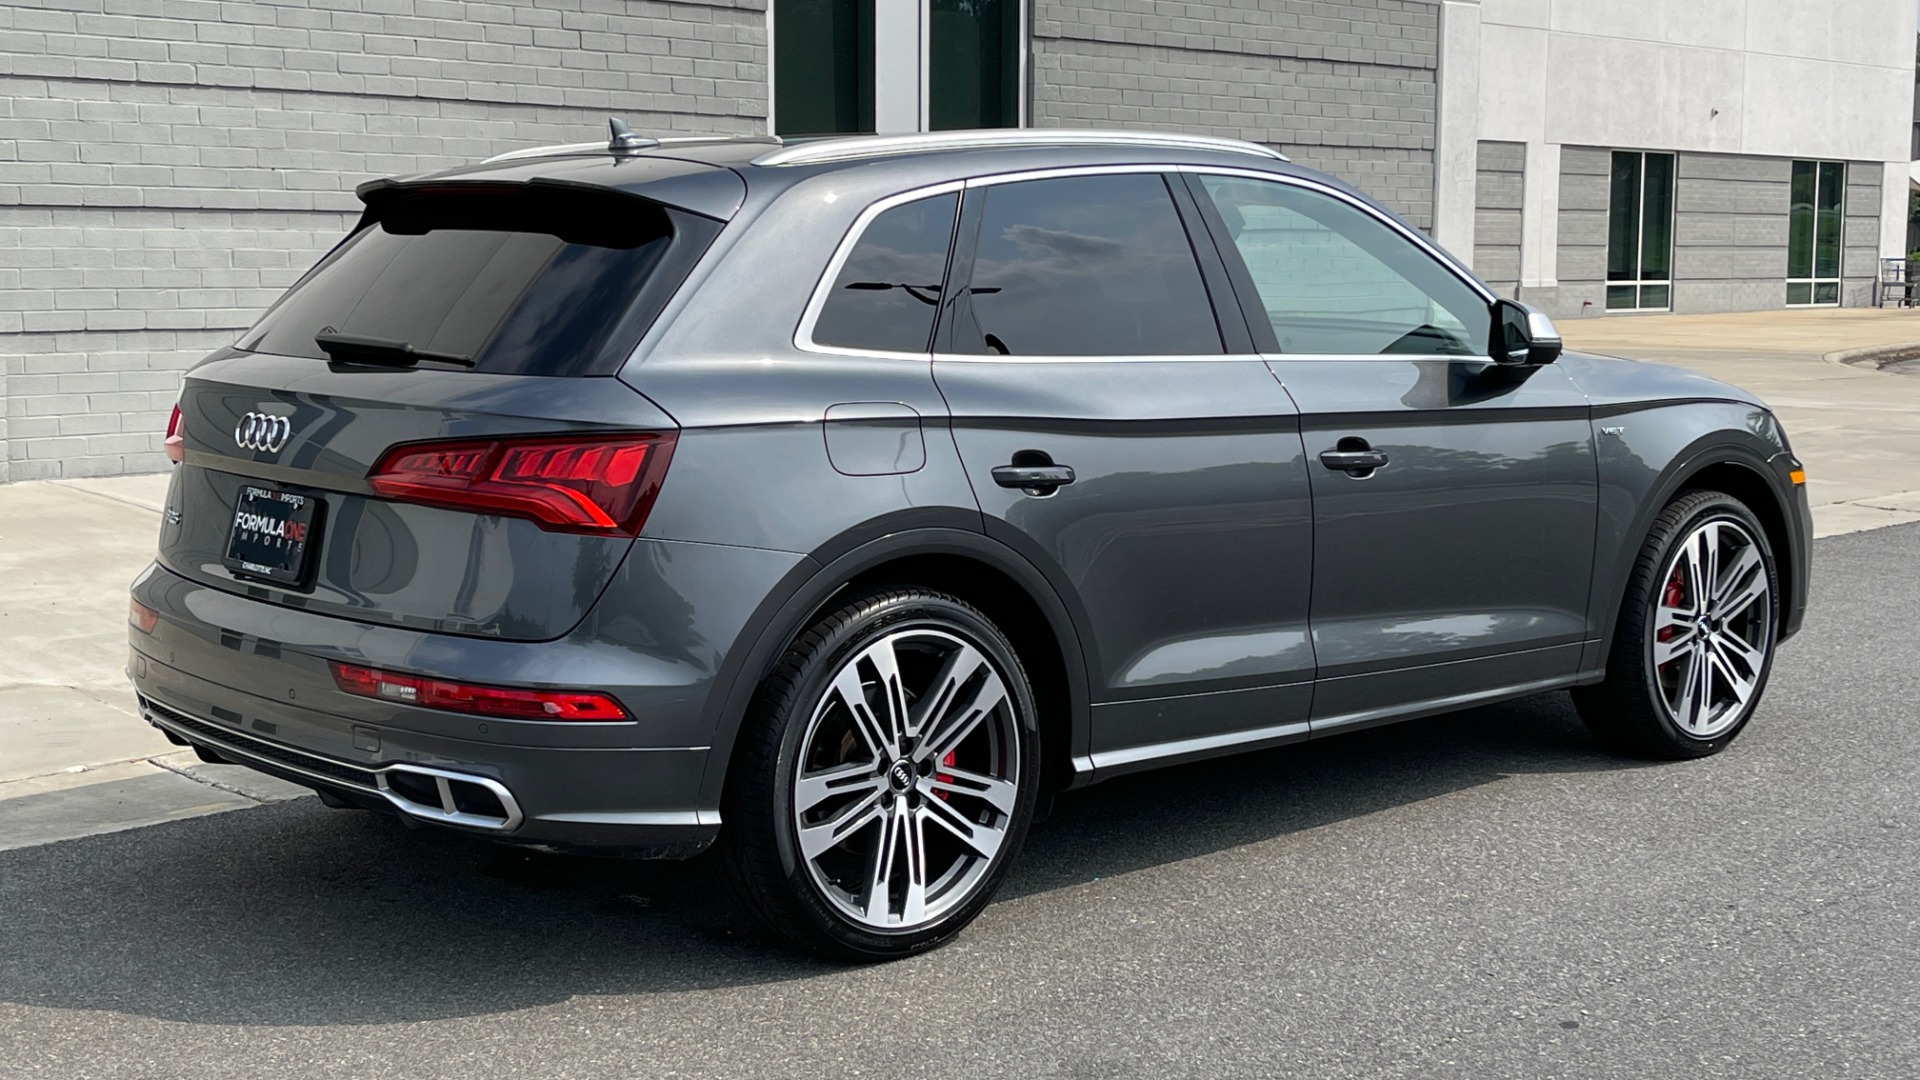 Used 2018 Audi SQ5 PREMIUM PLUS / S-SPORT / NAV / B&O SND / SUNROOF / REARVIEW for sale $43,995 at Formula Imports in Charlotte NC 28227 2